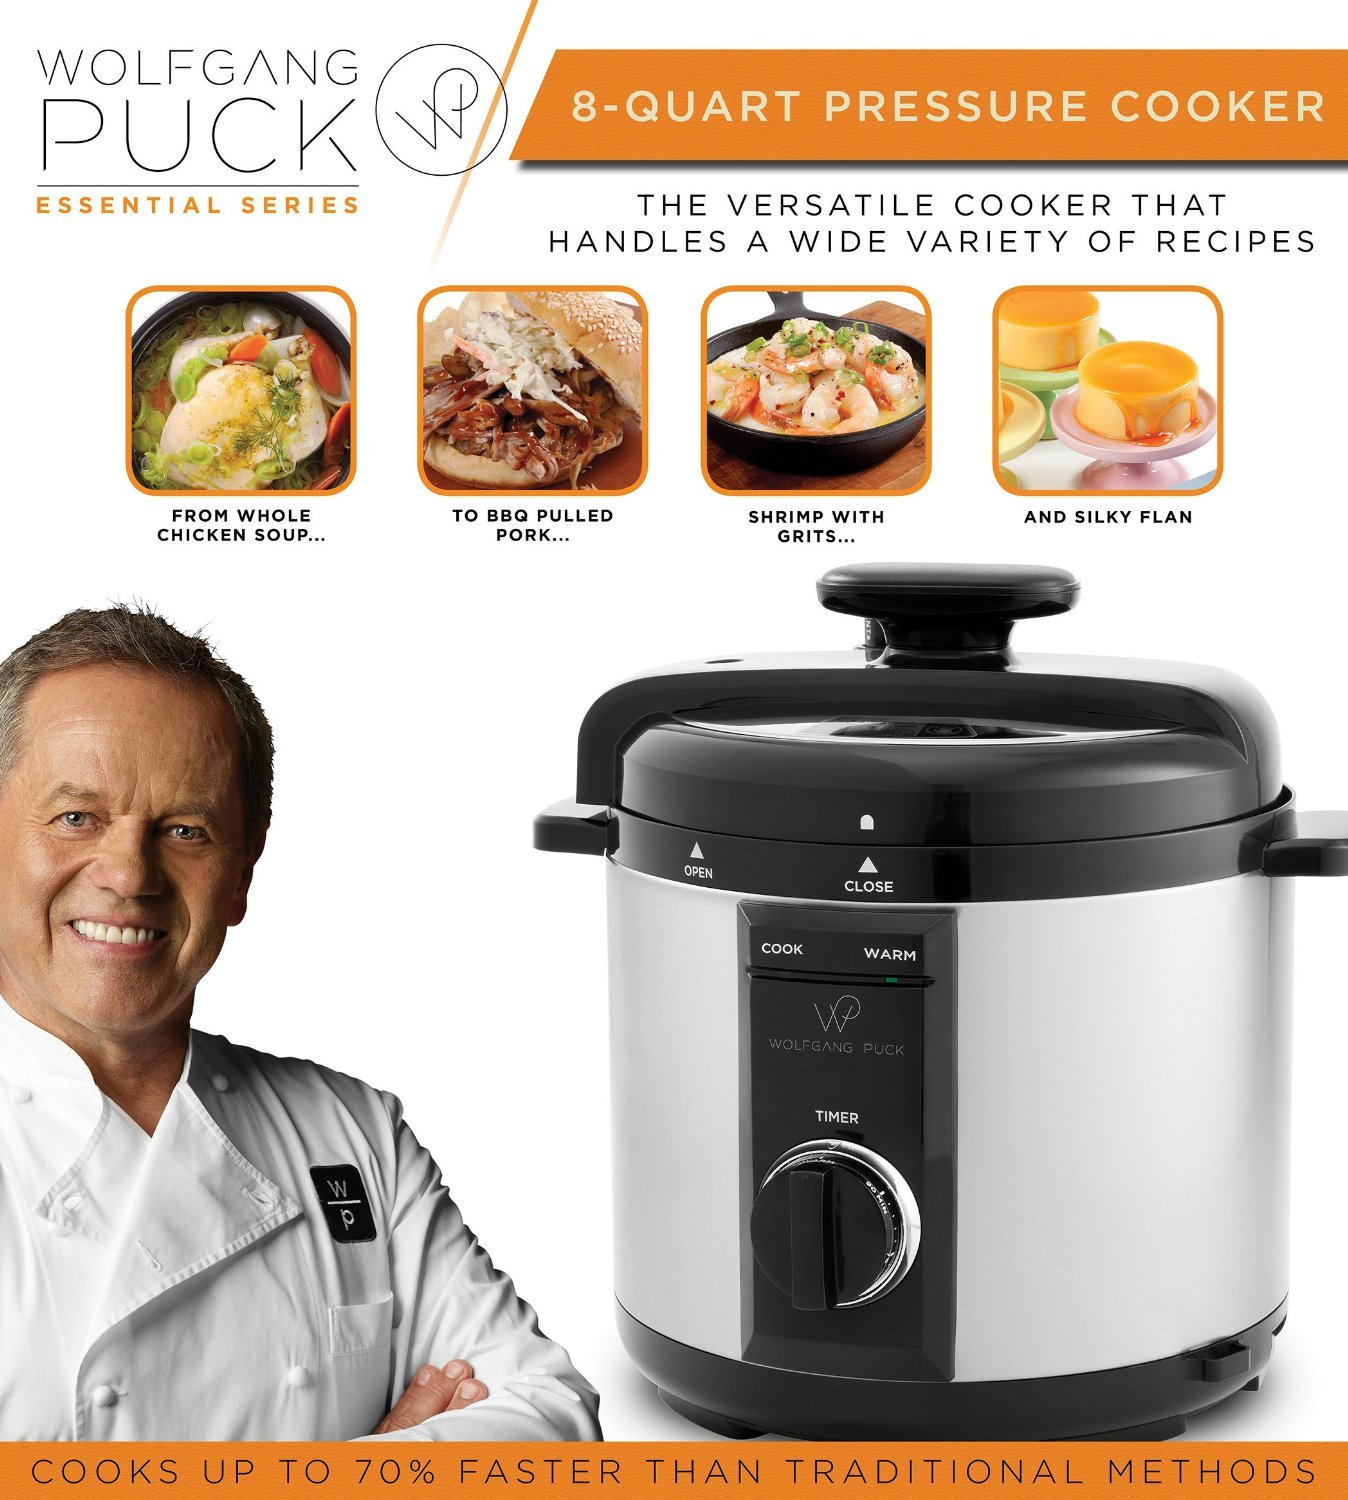 Wolfgang Puck Automatic Pressure Cooker with Removable 8 Quart Pot, 1200-Watt Cook and Sear by Wolfgang Puck (Image #5)